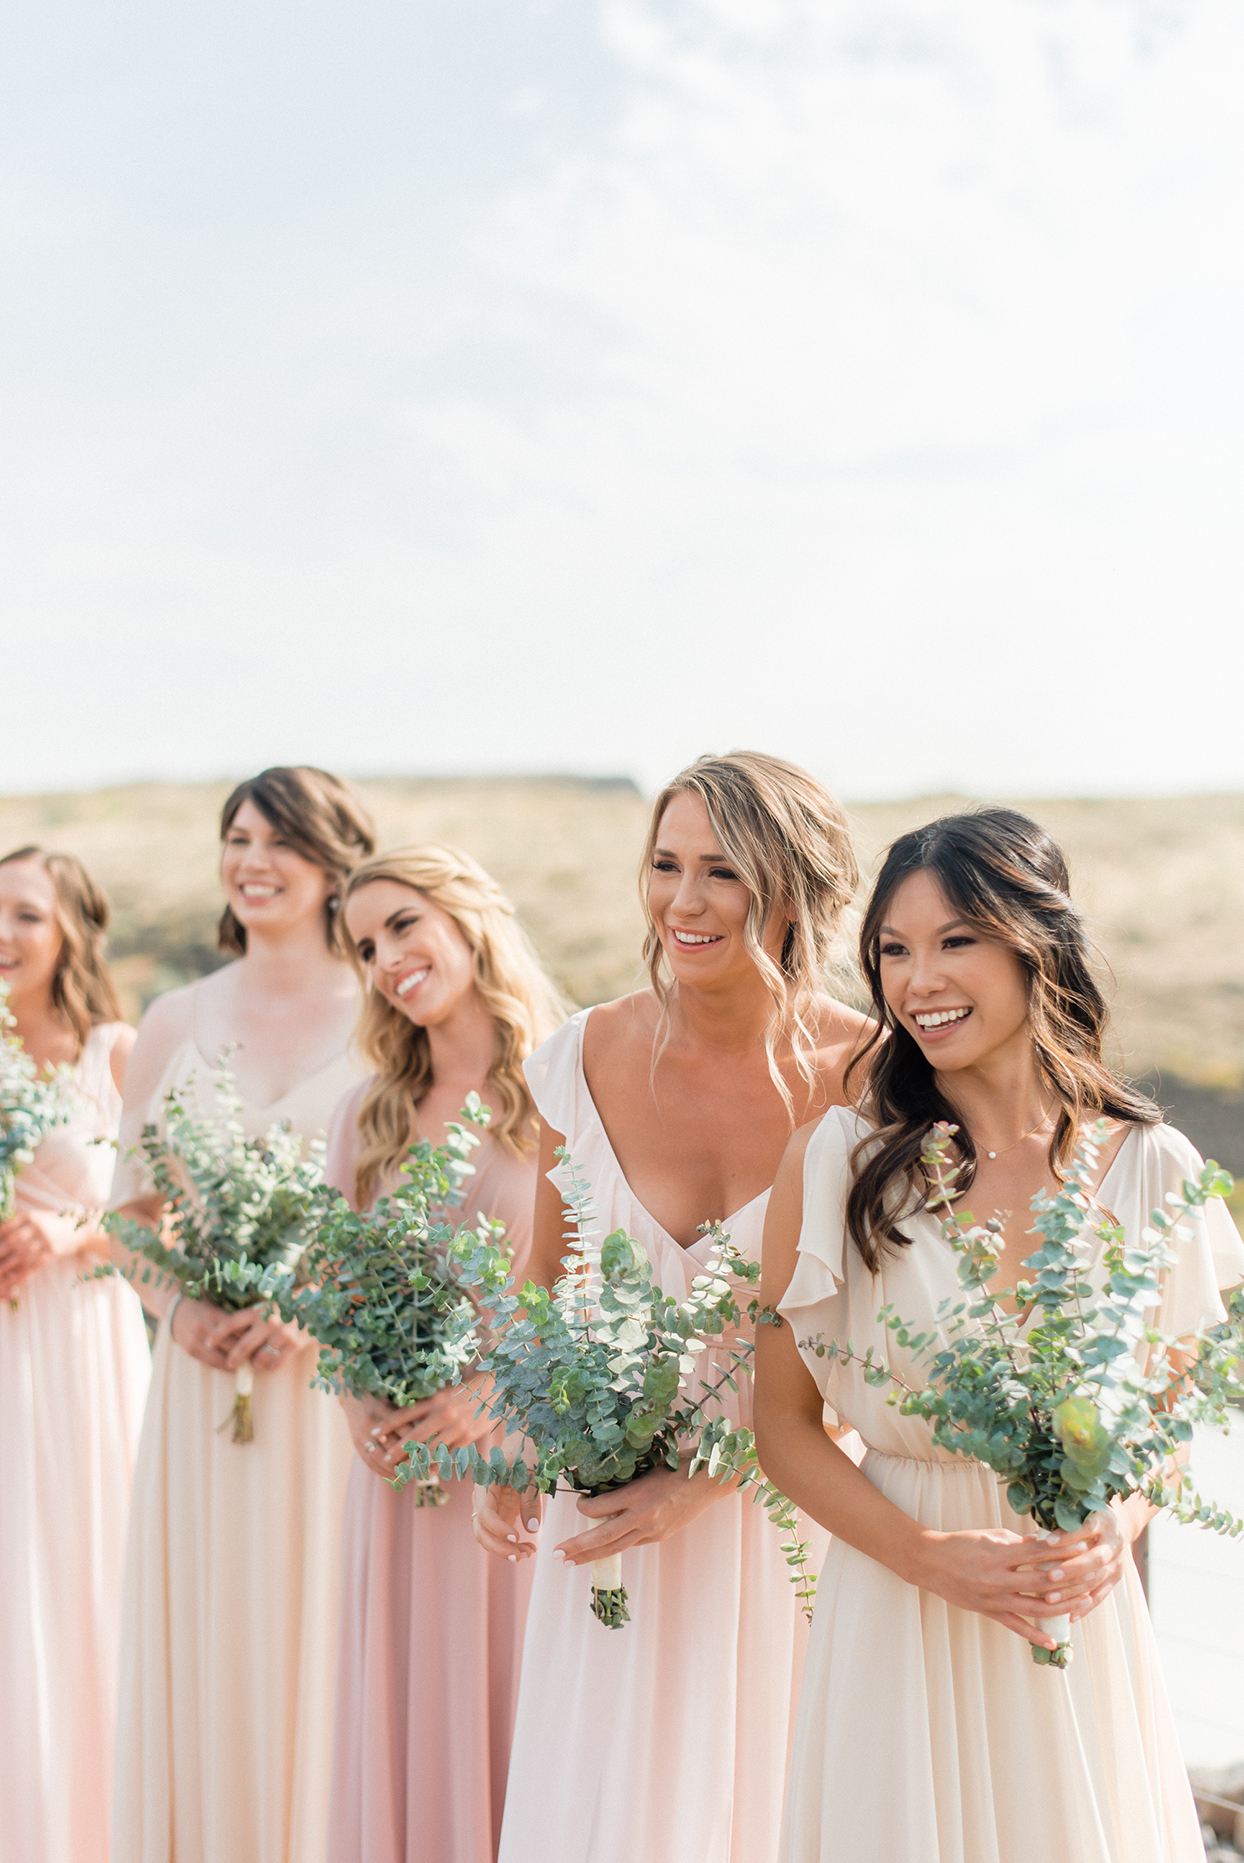 micaela curtis wedding bridesmaids greenery bouquets